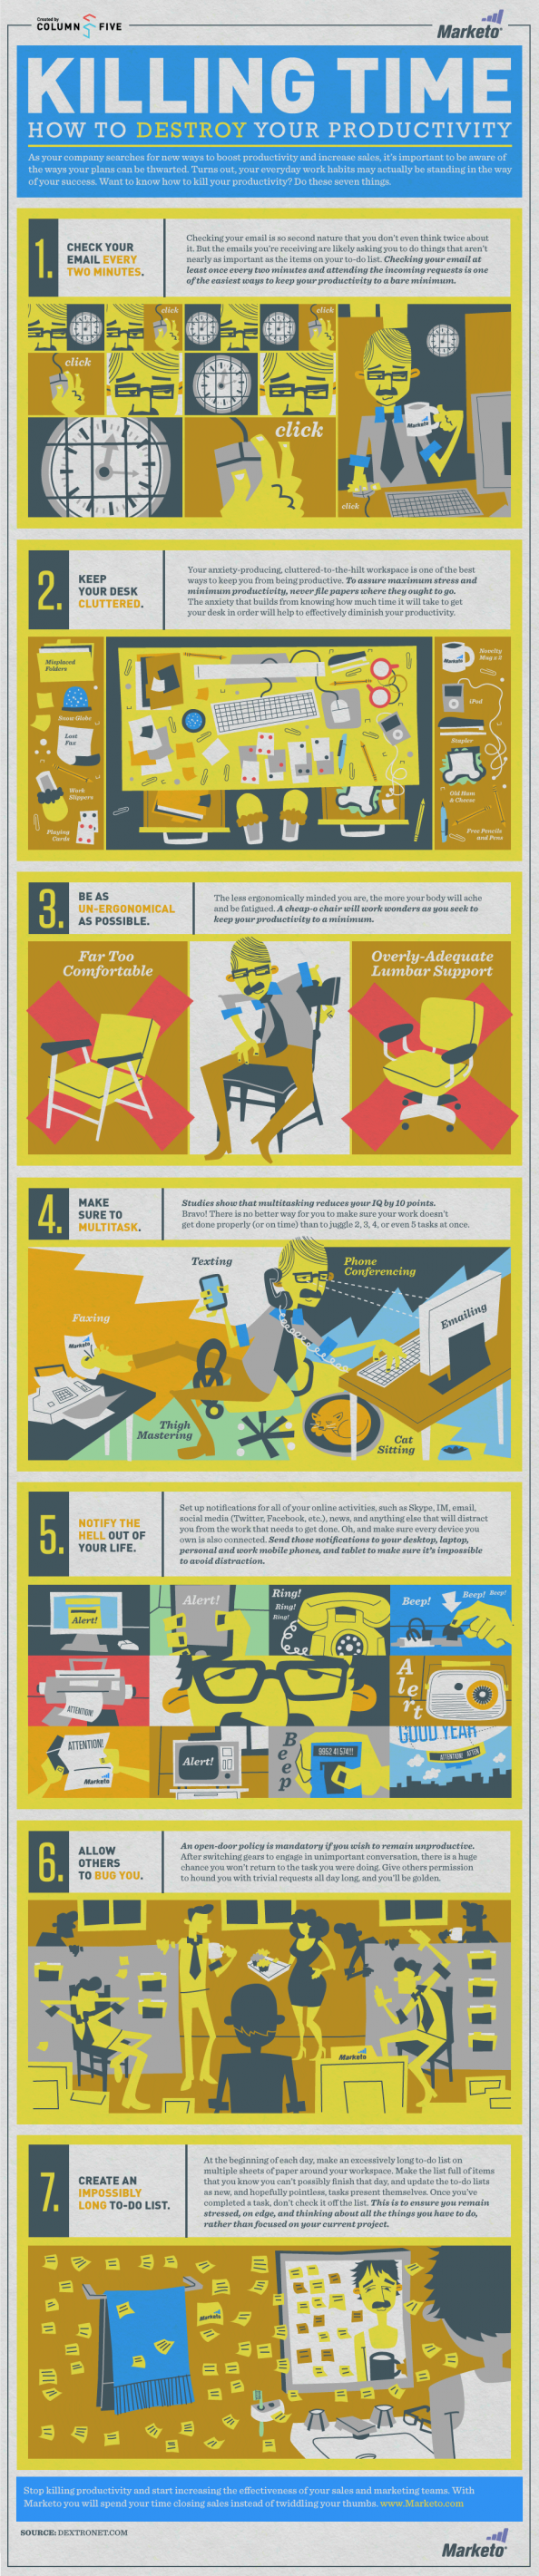 Killing Time: How to Destroy Your Productivity  Infographic